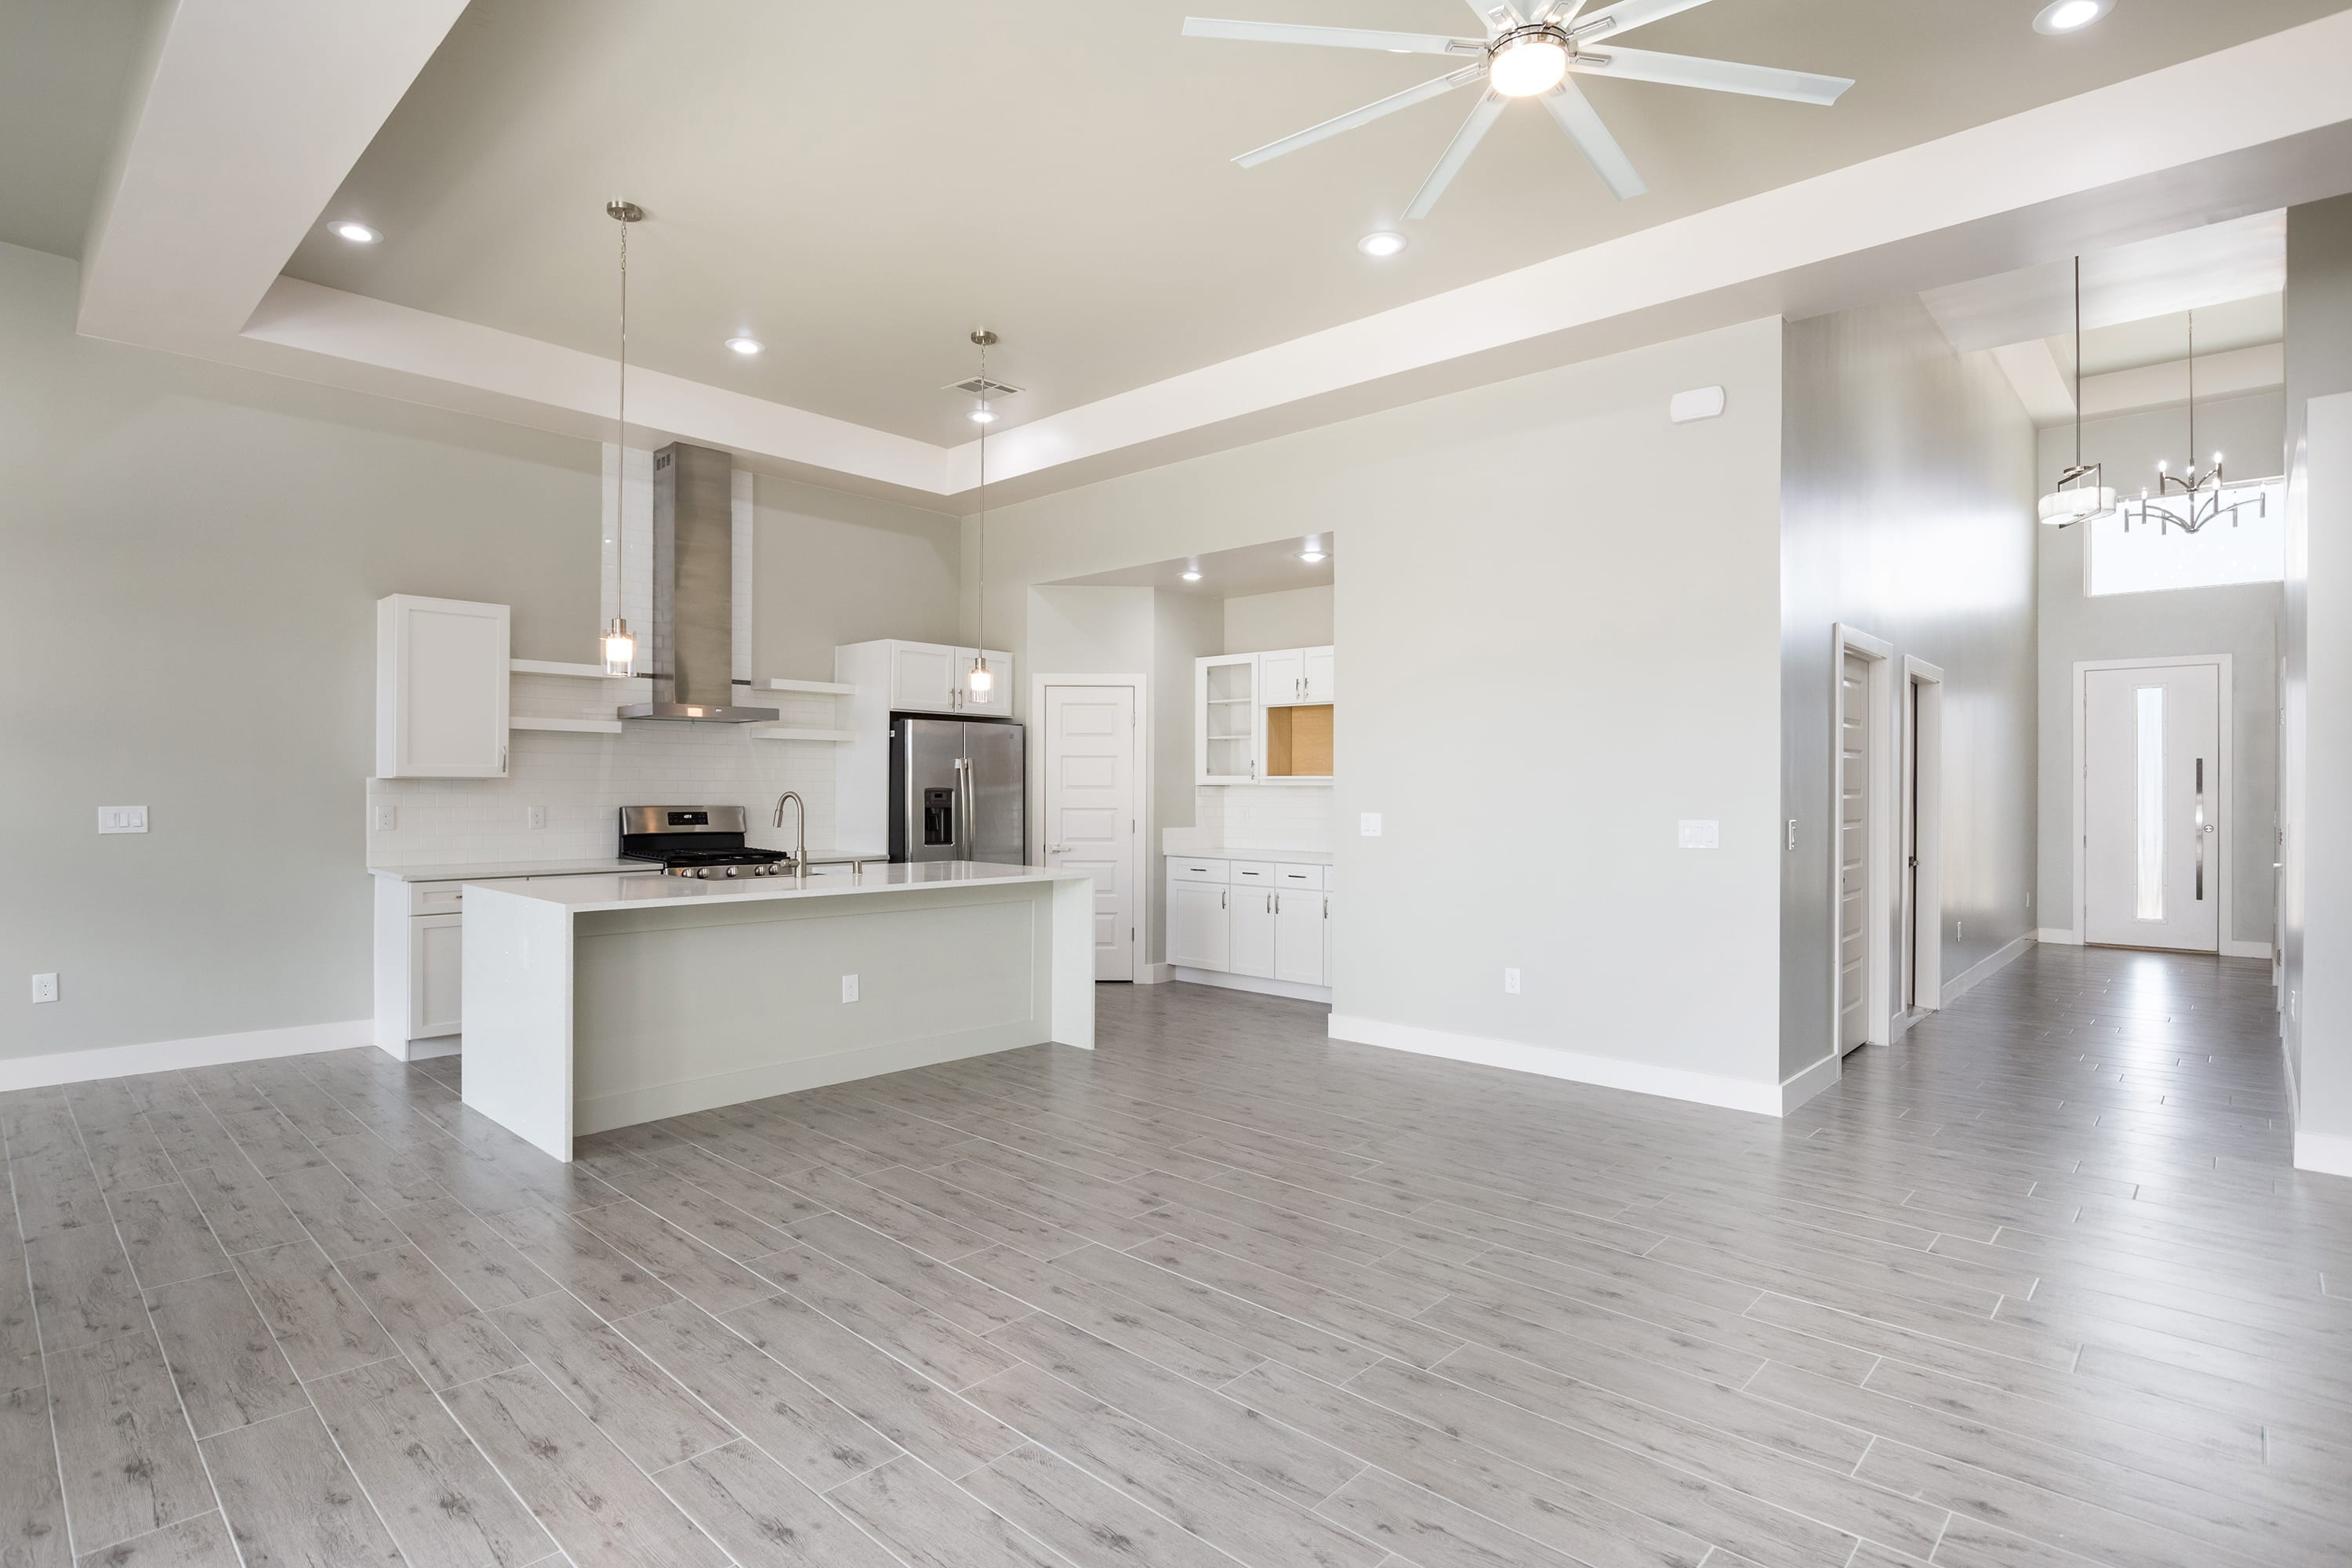 Interior ceiling shot of entryway and kitchen in 2884 Maddox contemporary home